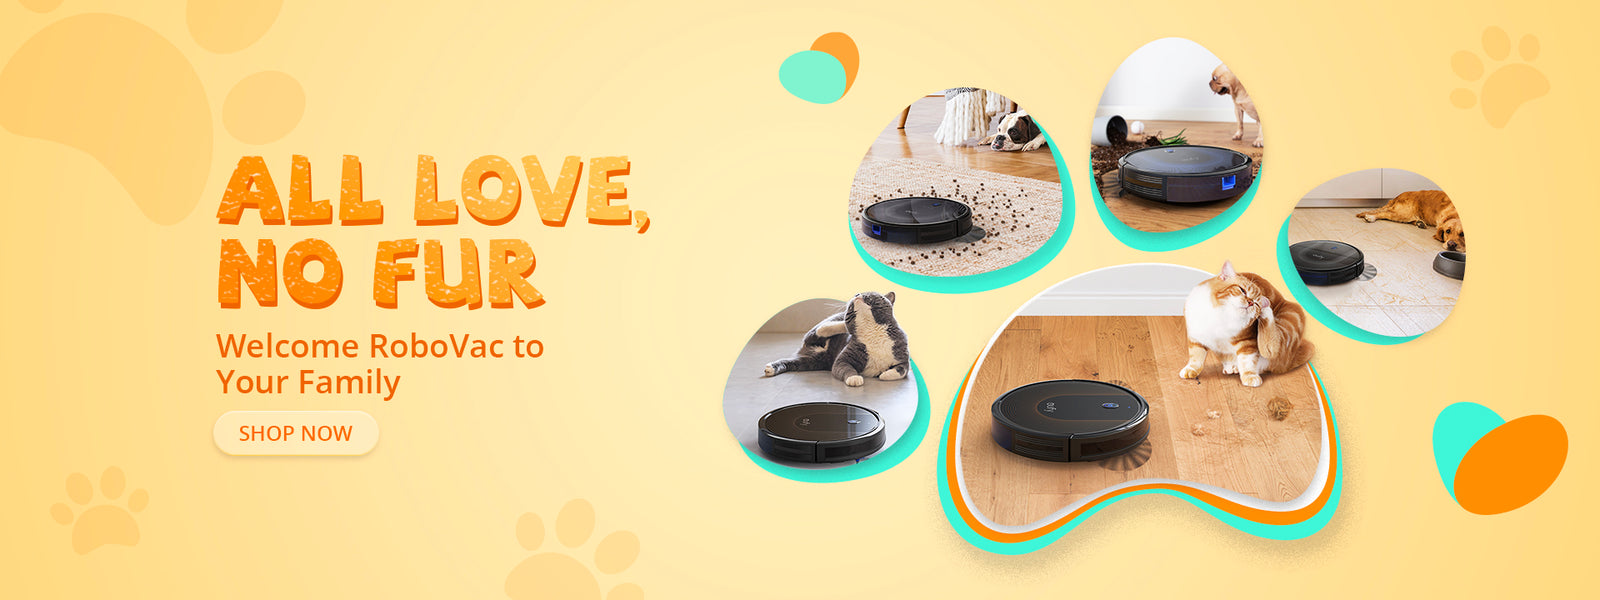 Eufy Coupon Codes - Vacuums for Pet Hair starting at just $179.99